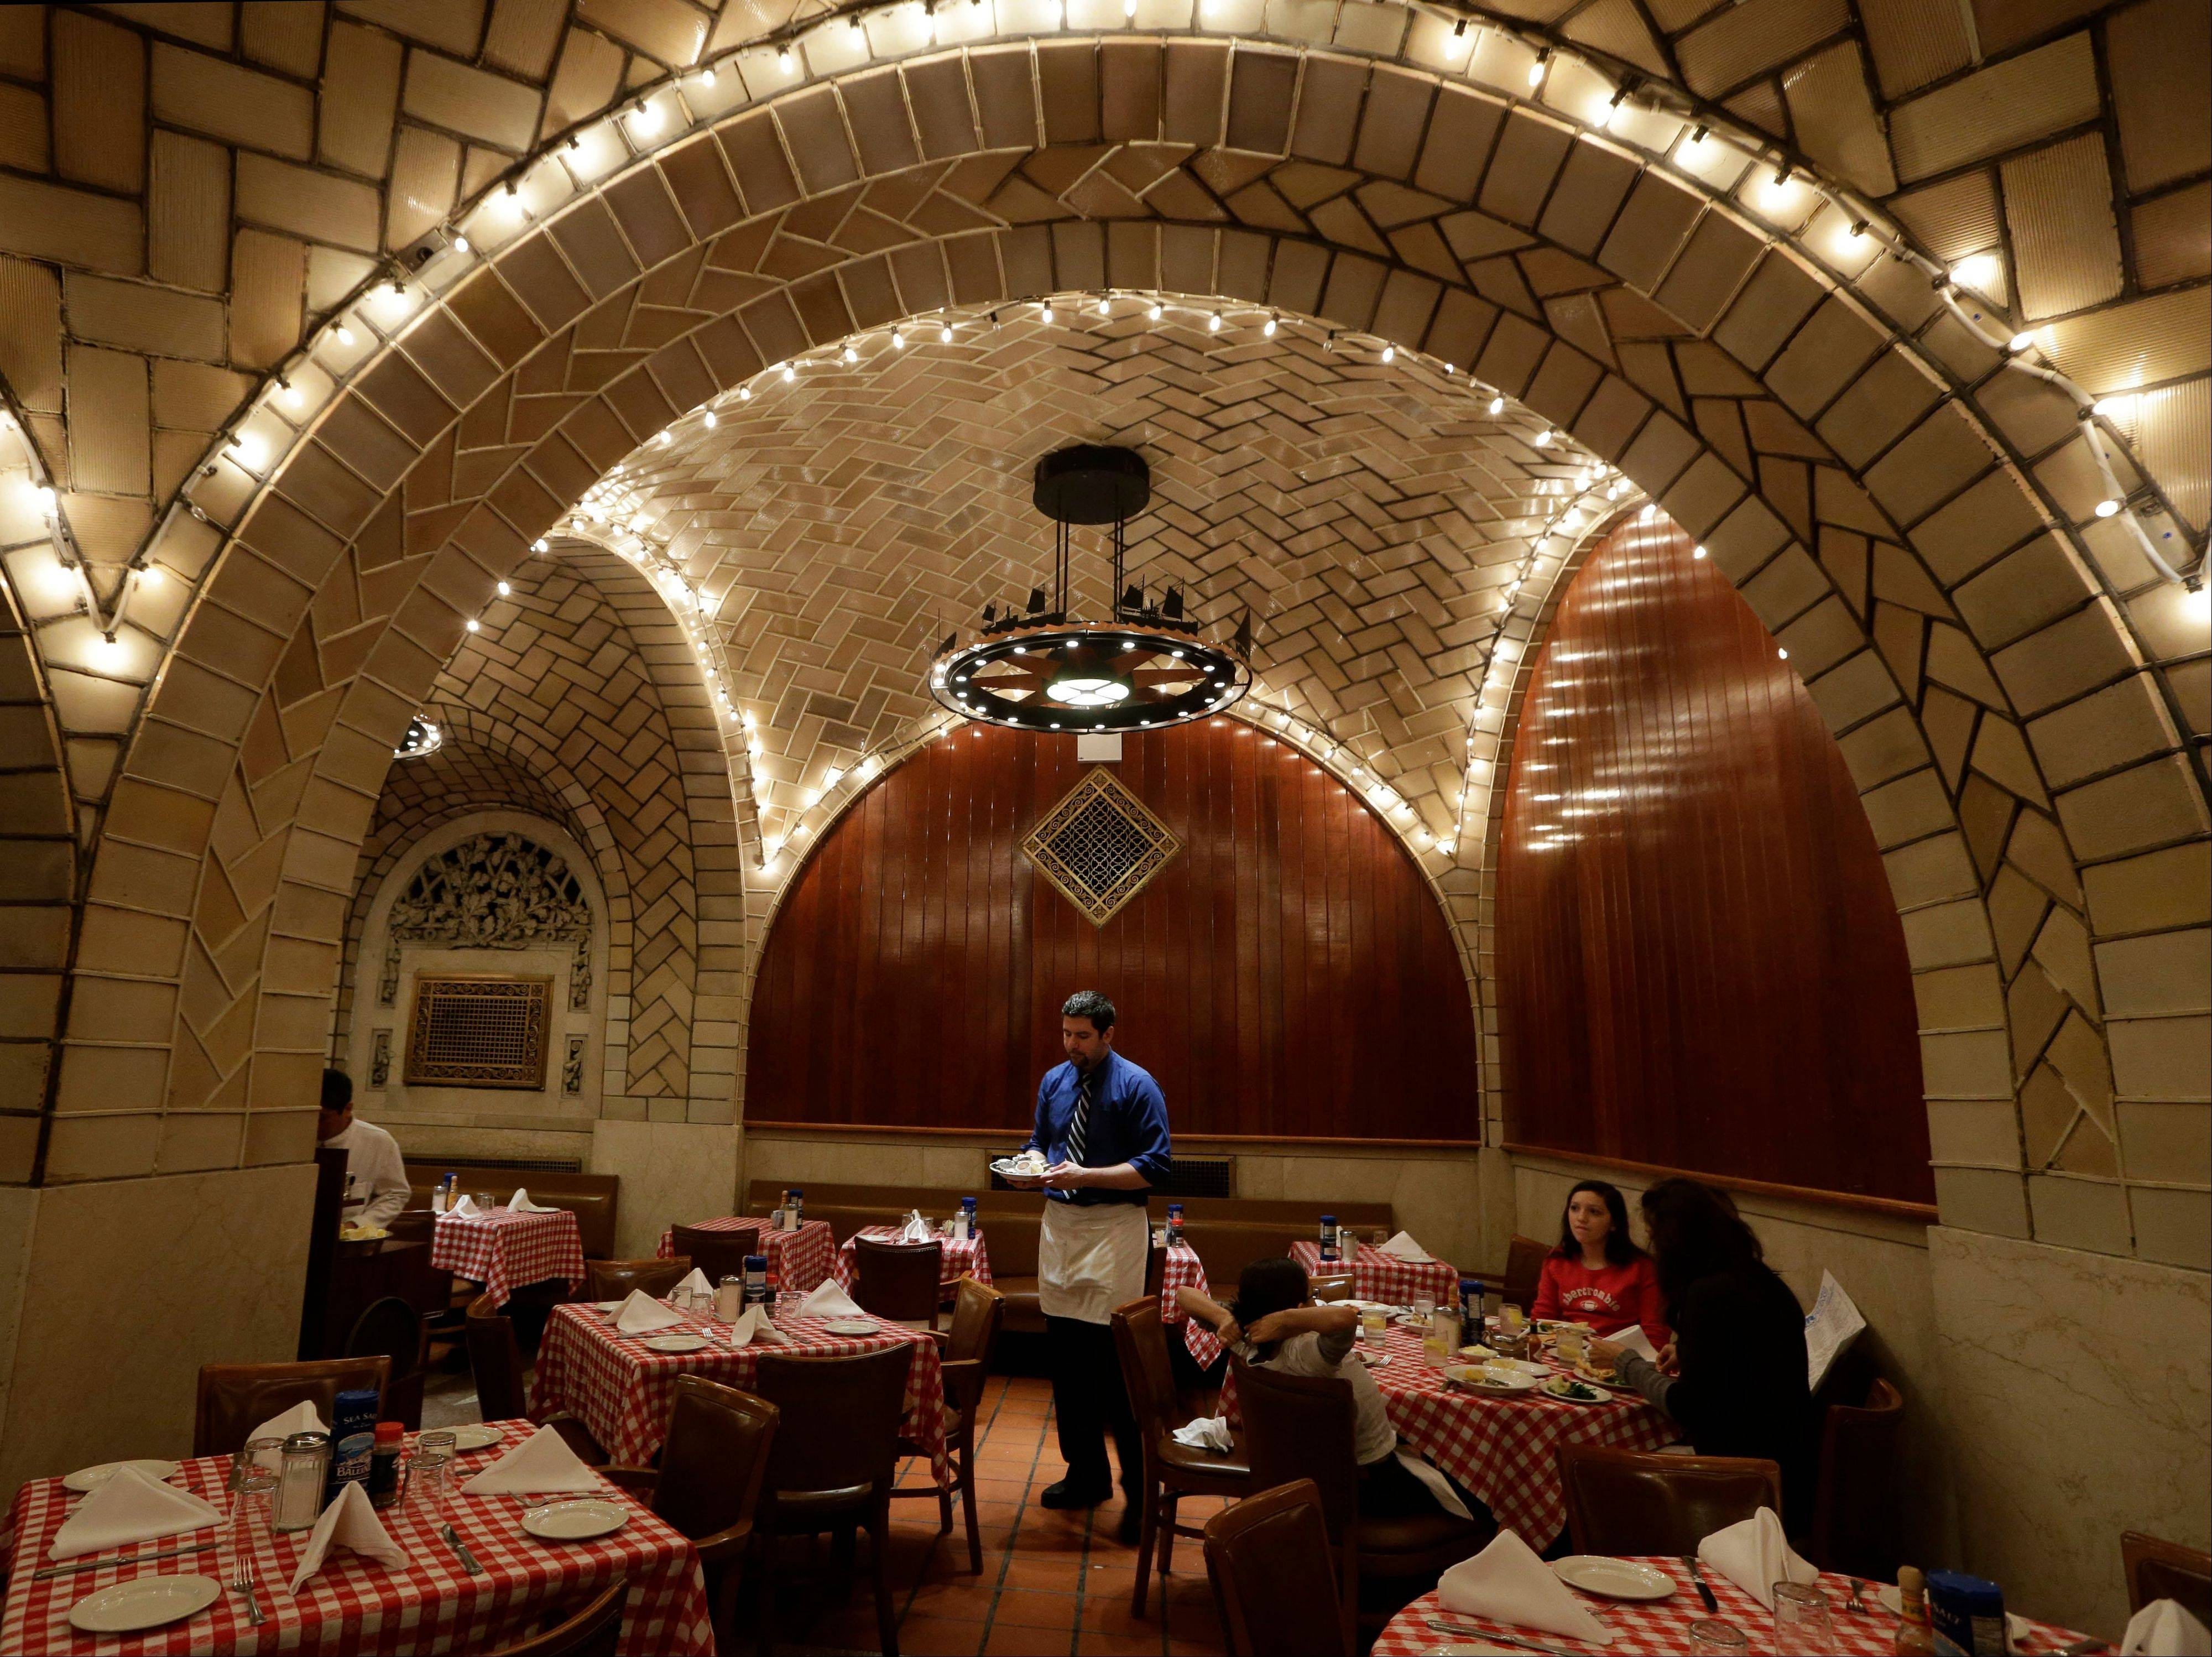 A server works beneath the tiled and vaulted ceilings at The Oyster Bar at Grand Central Terminal in New York.